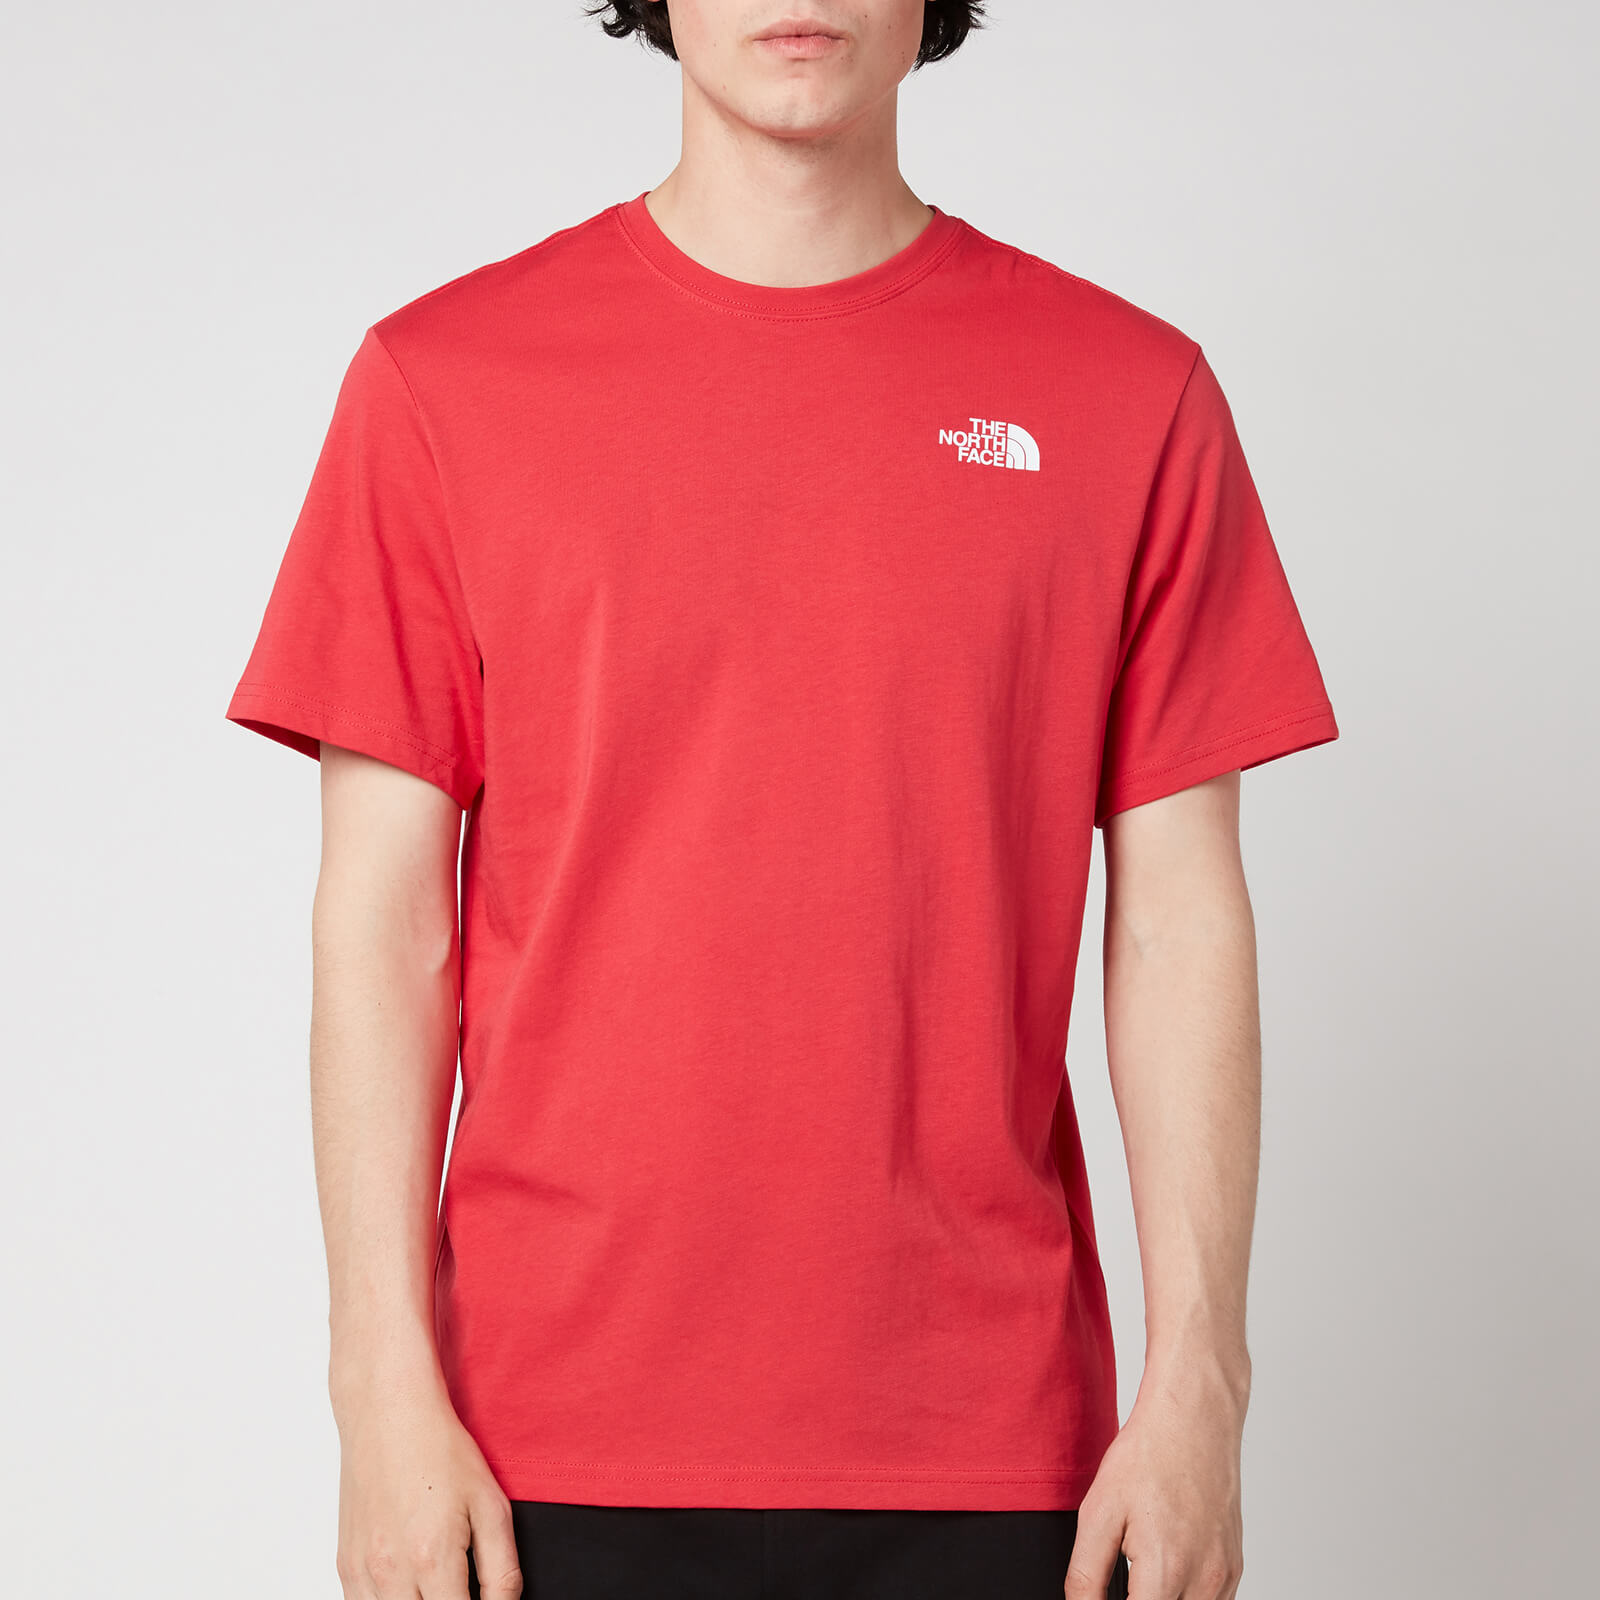 The North Face Men's Redbox Short Sleeve T-Shirt - Rococco Red - S